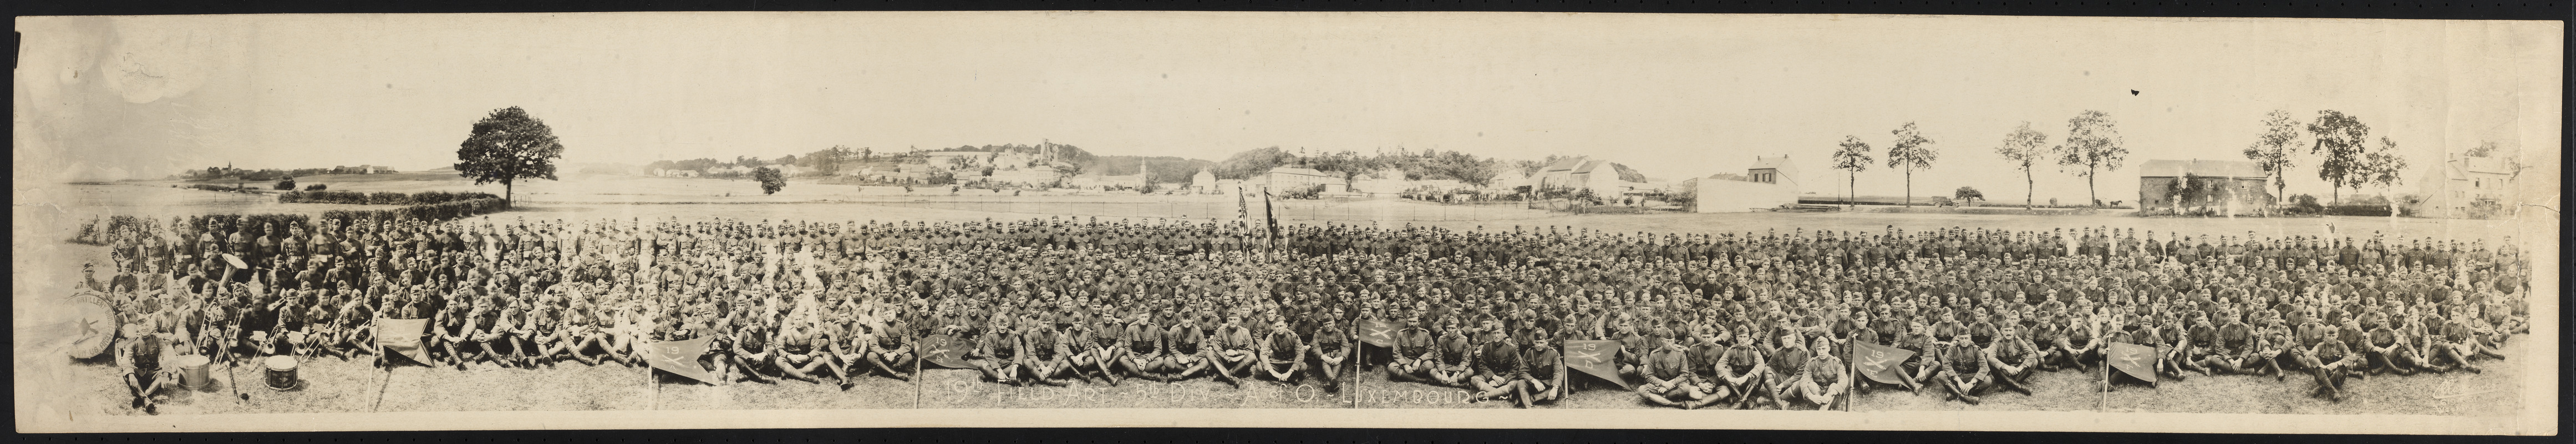 19th Field Artillery, 5th Division, A. of O. - Luxembourg